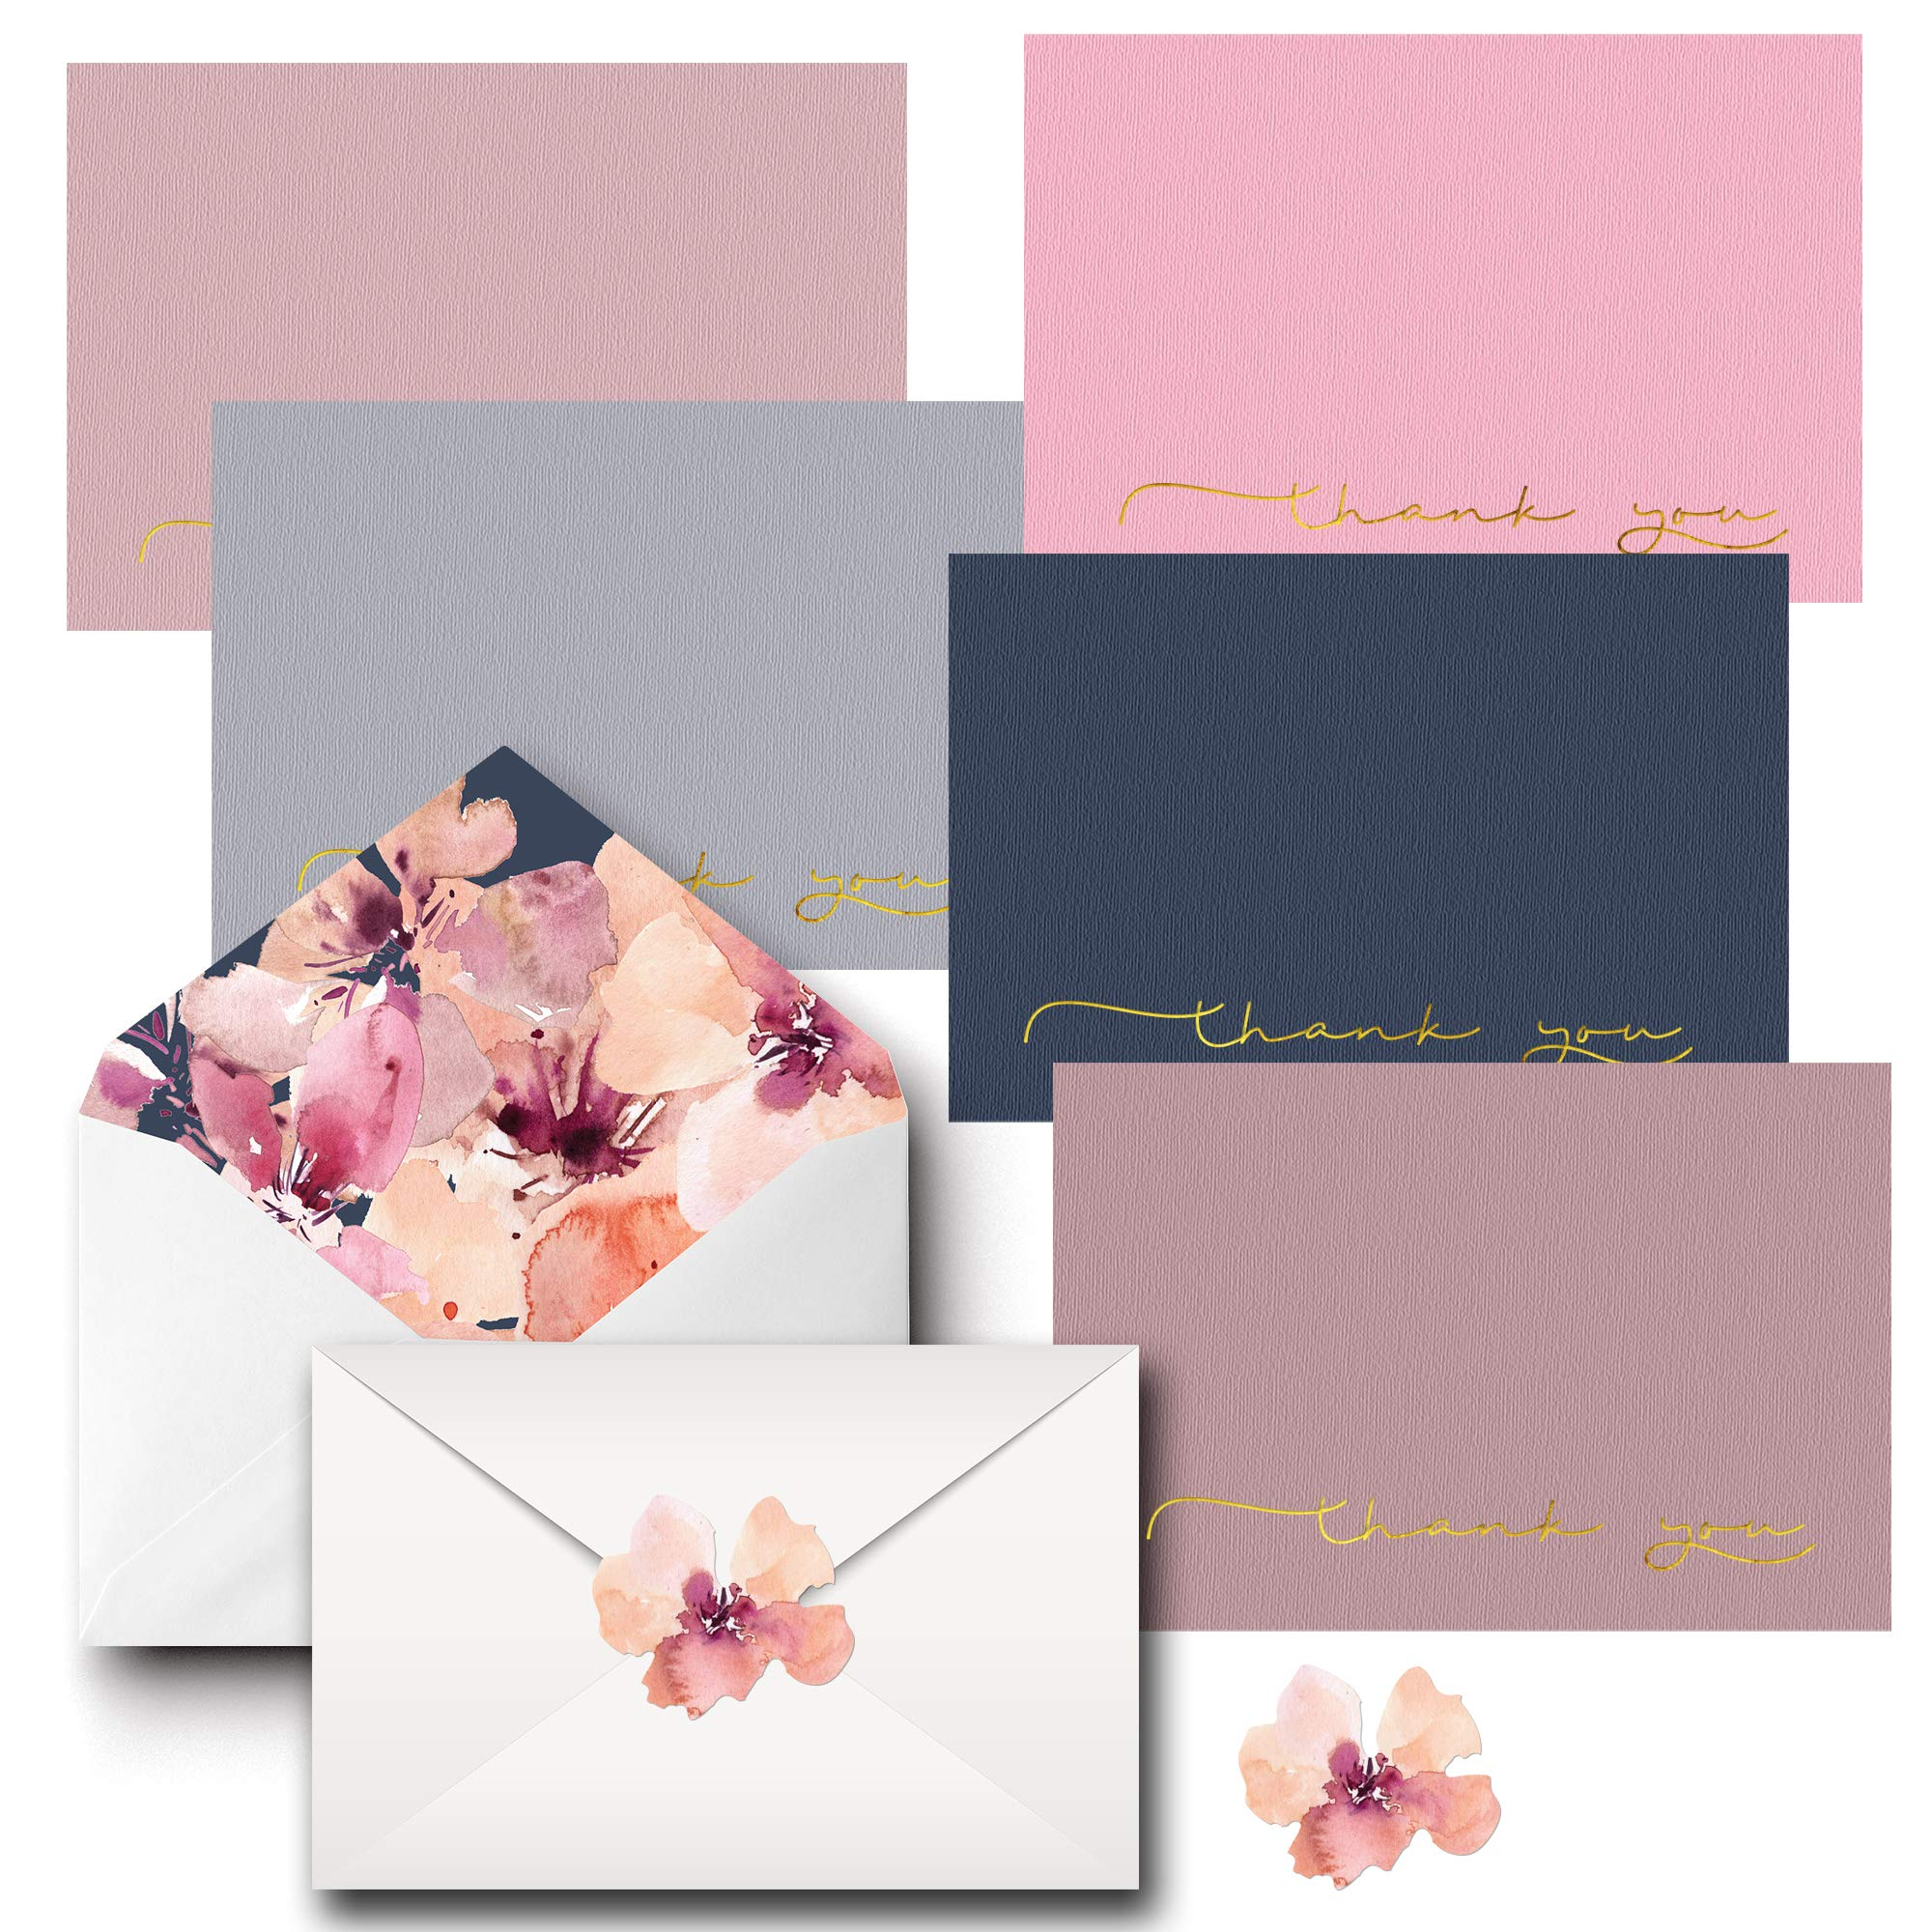 Thank You Cards - Includes 20 Bulk Blank Sets (5 Colors, 4 of each) on Linen Paper, Printed Envelopes and Matching Stickers - Greeting Cards Great for Baby Showers, Appreciation, Birthdays & Weddings